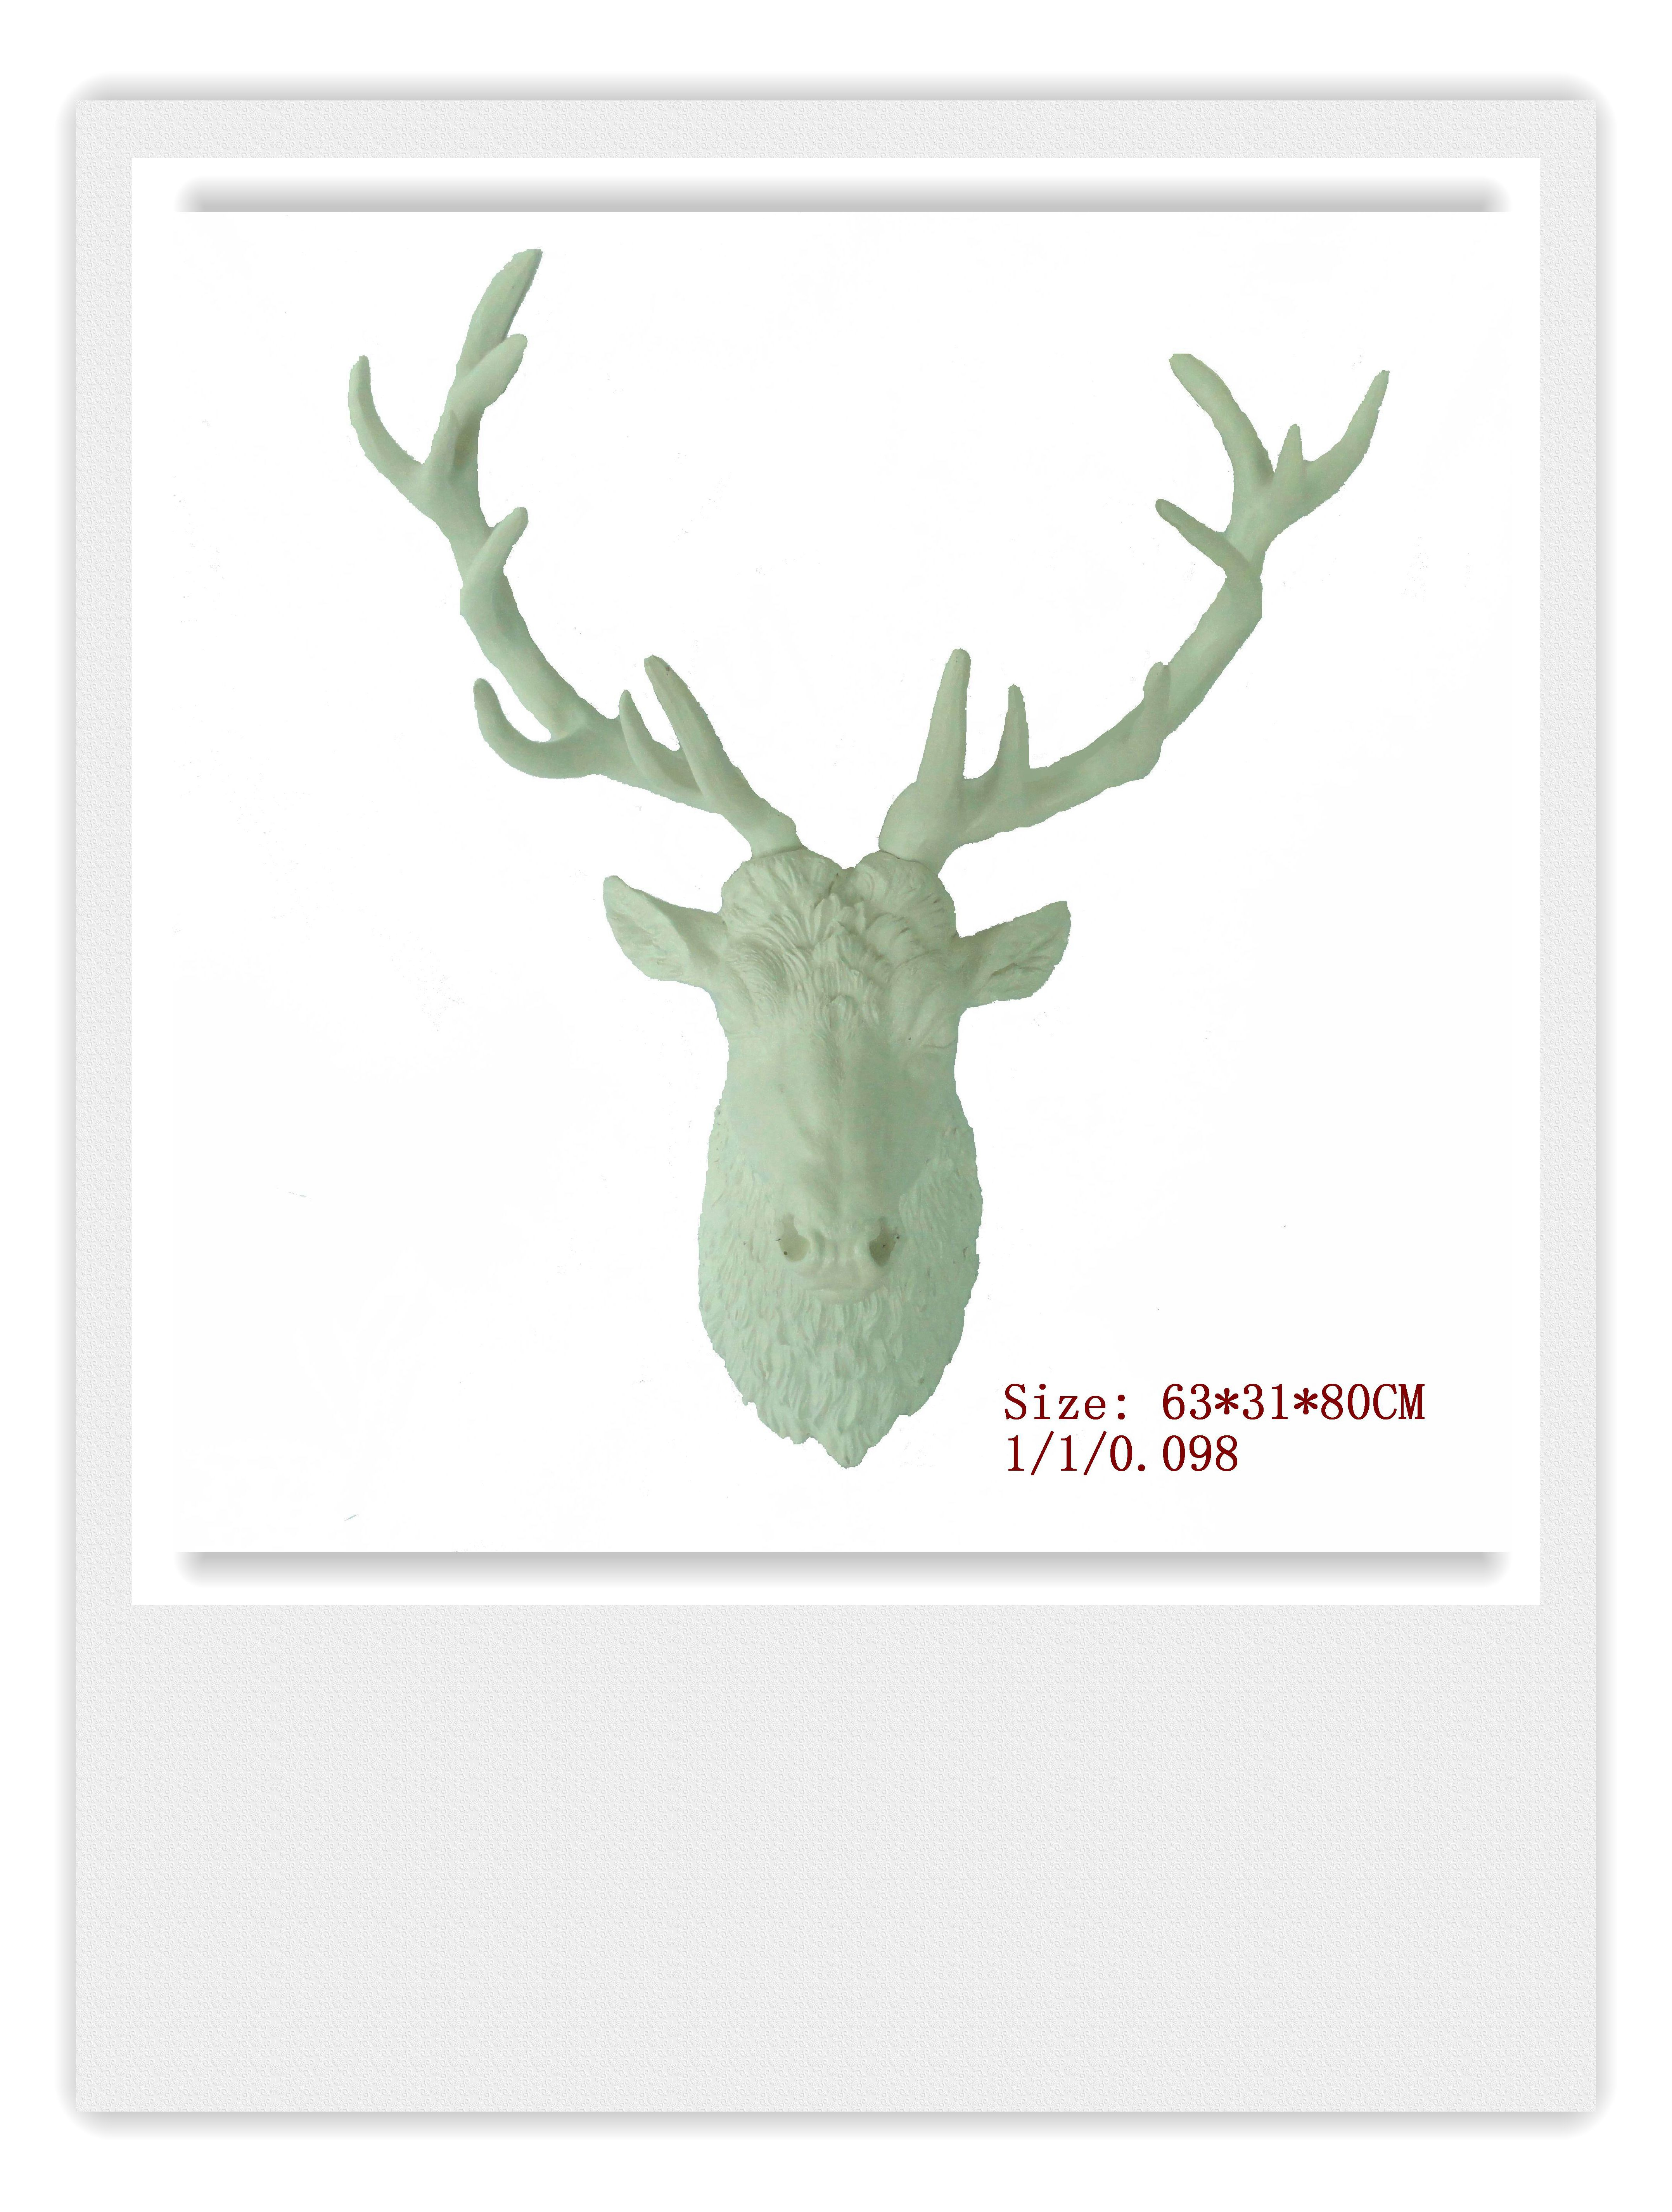 Large Deer Head Faux Taxidermy Wall Decor throughout Best and Newest White Large Deer Head Wall Hanging,the White Stag Decorwhite